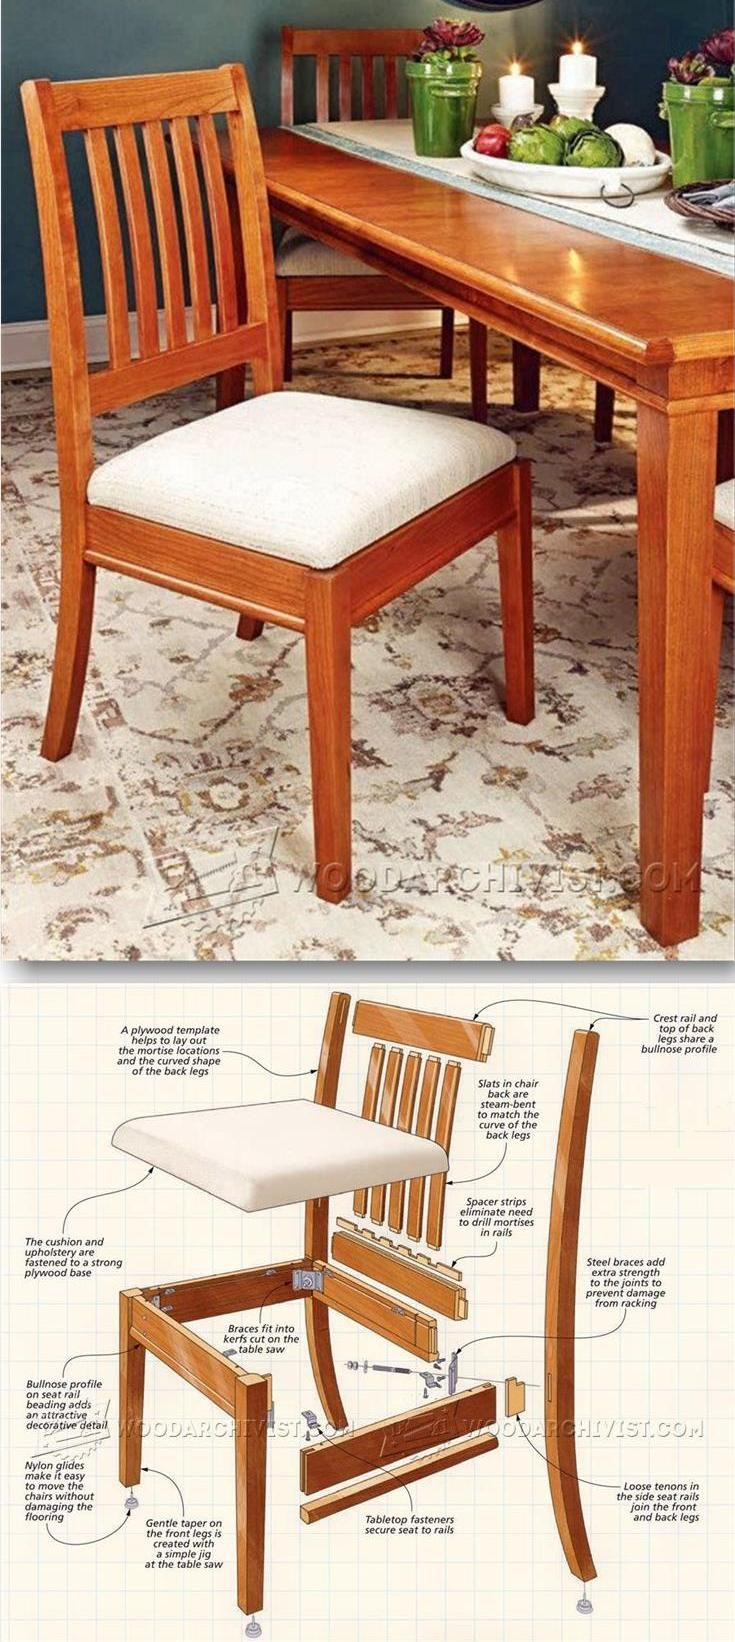 Outdoor furniture plans - Dining Chair Plans Furniture Plans And Projects Woodarchivist Com